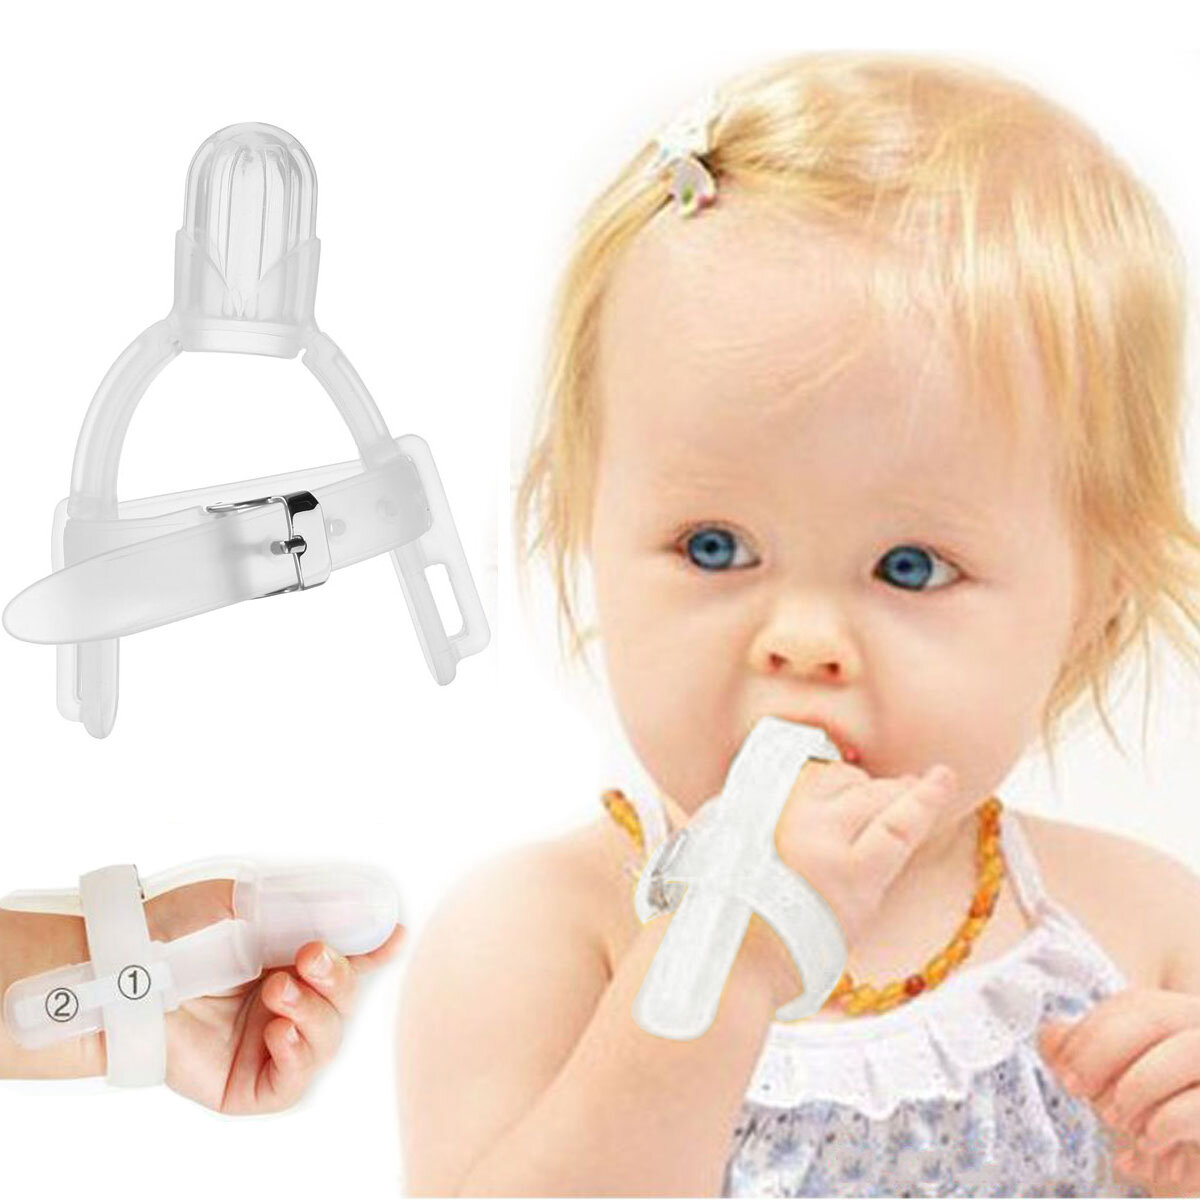 Thumbsucking Silicone Thumb Sucking Stop Finger Guard Protector For 1-5 years Baby Kids